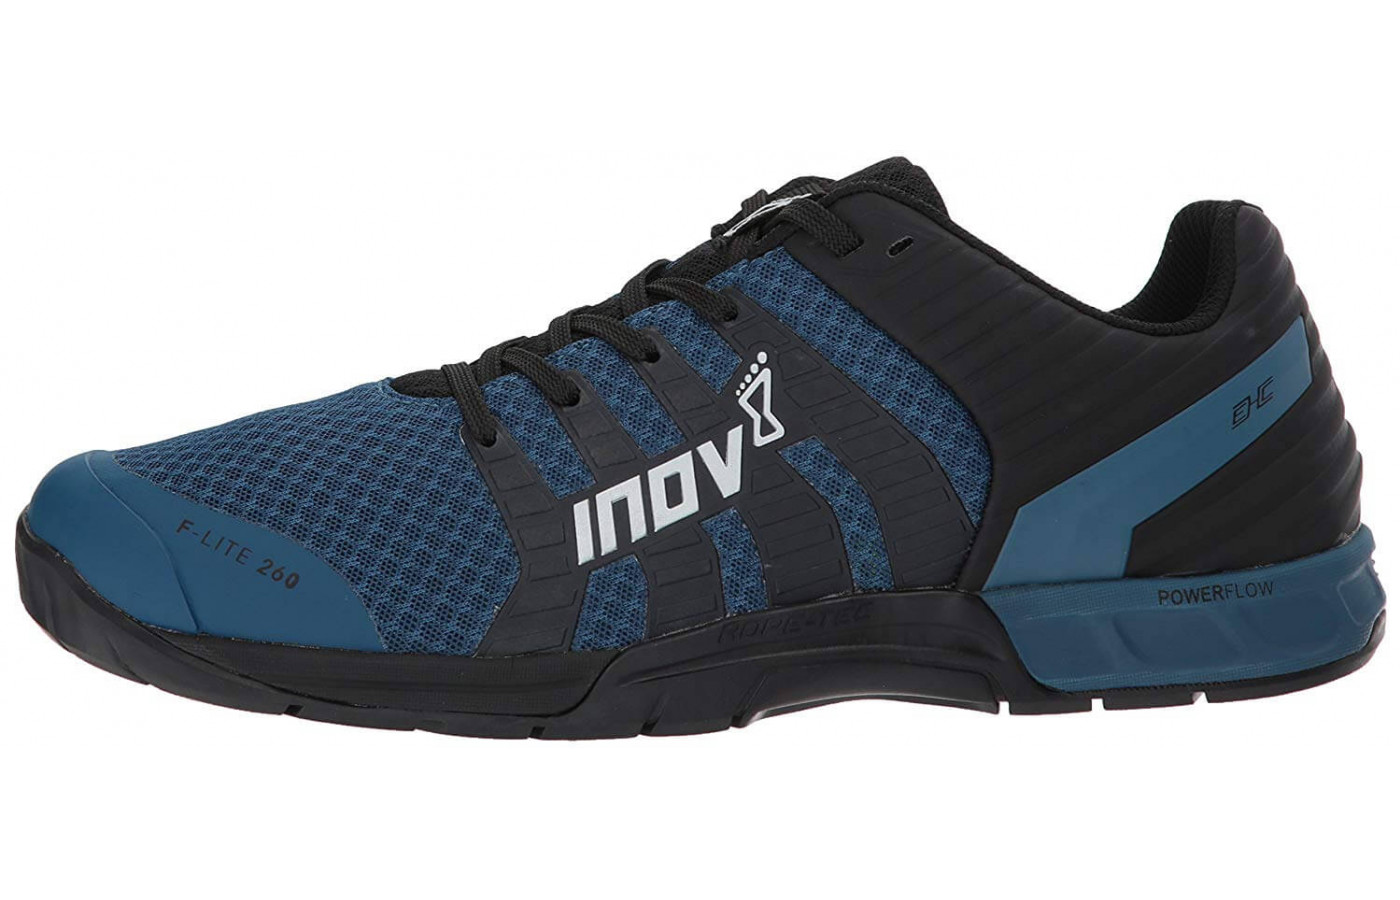 A Dynamic Fascia Band and Power Footbed insole add to the F-Lite 260's responsiveness